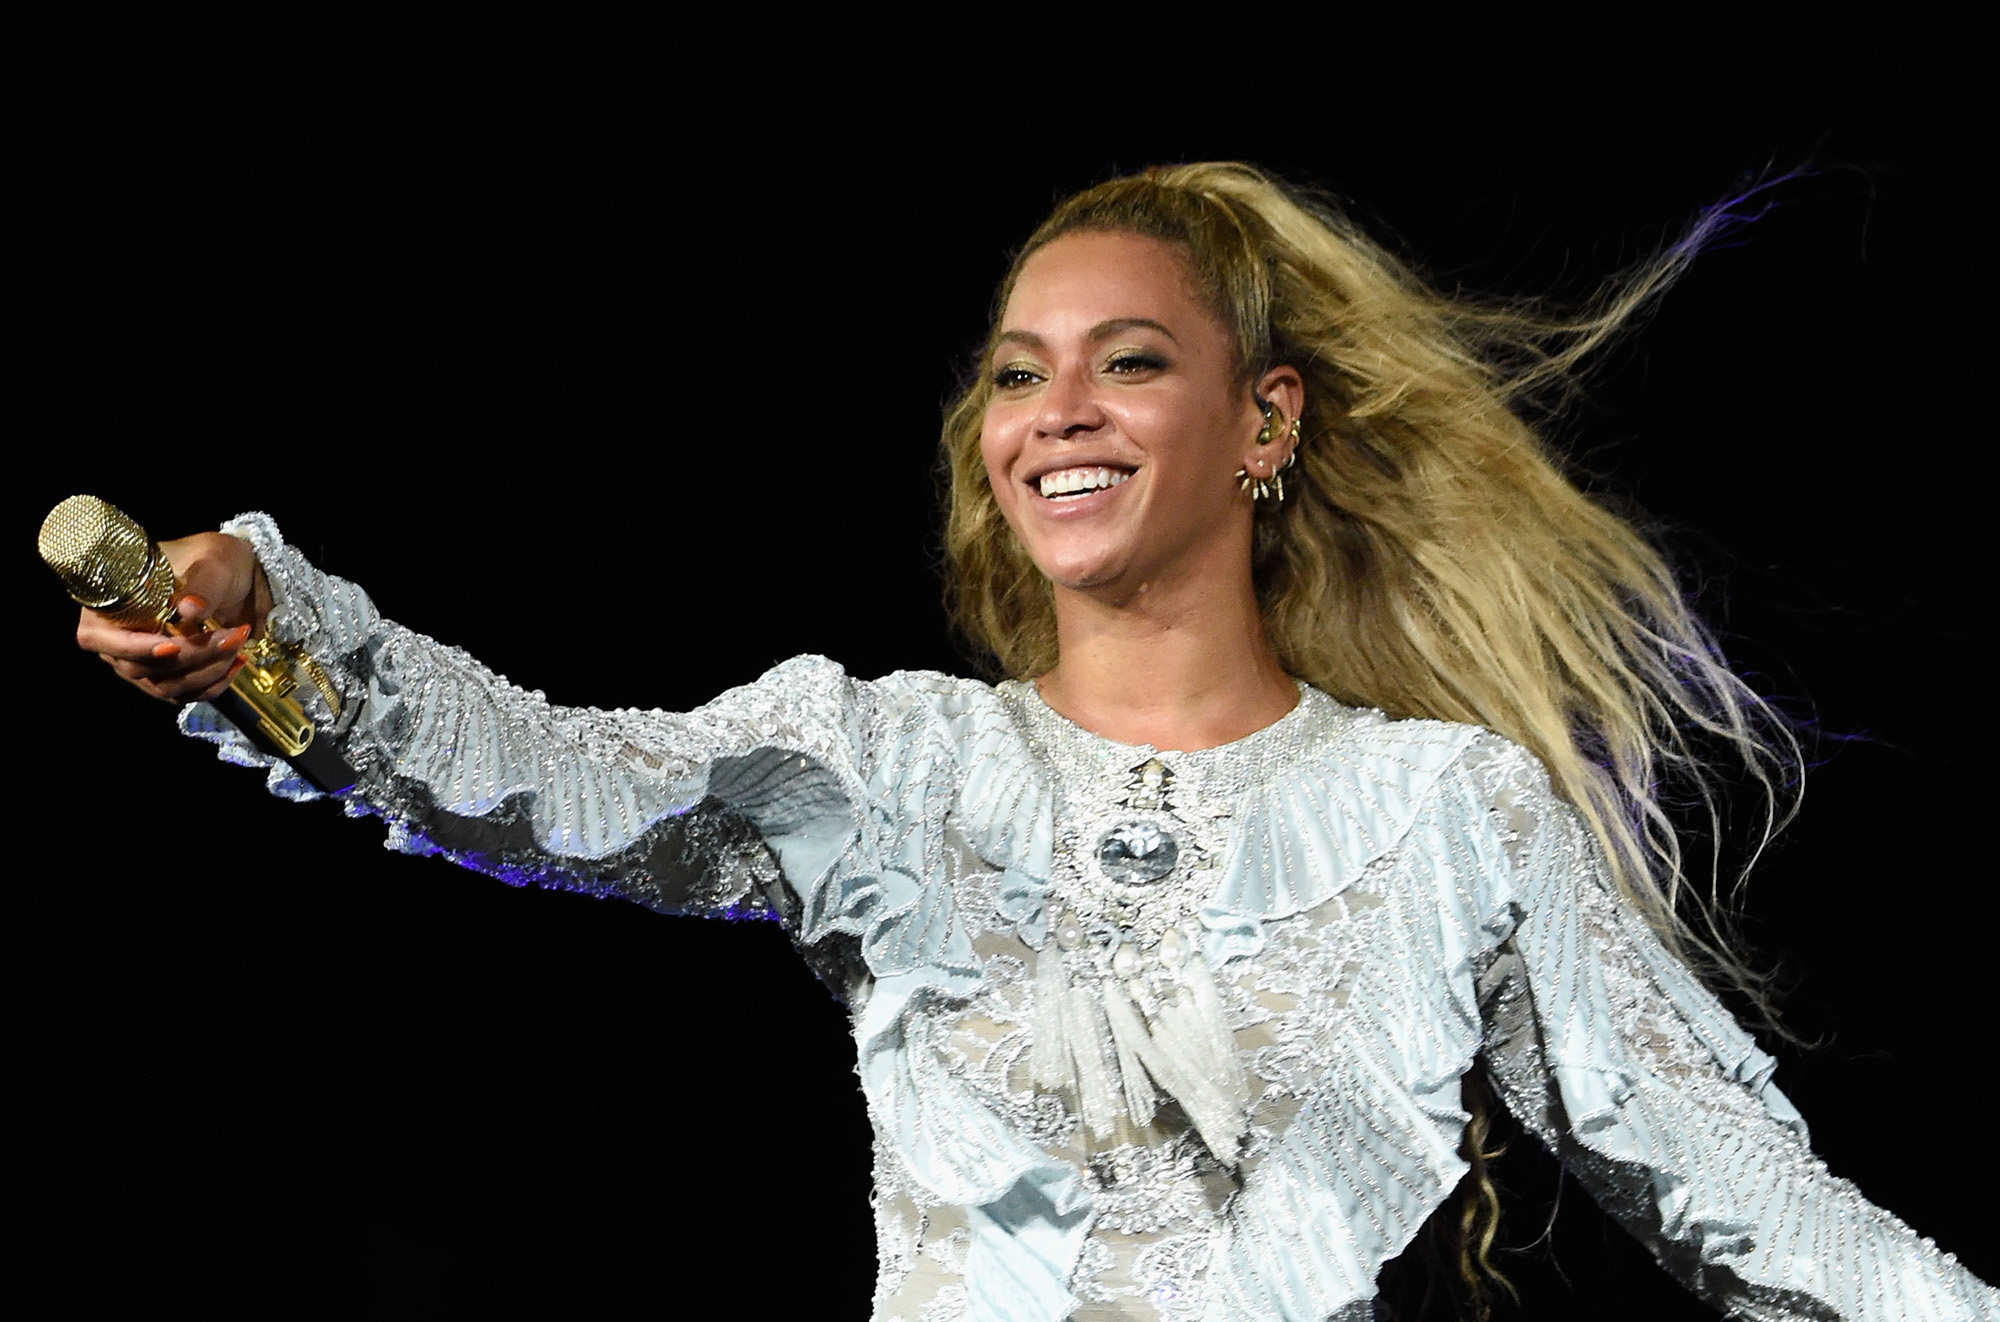 Beyonce performs on stage during  The Formation World Tour  in Santa Clara, California. (Photo by Kevin Mazur/WireImage)